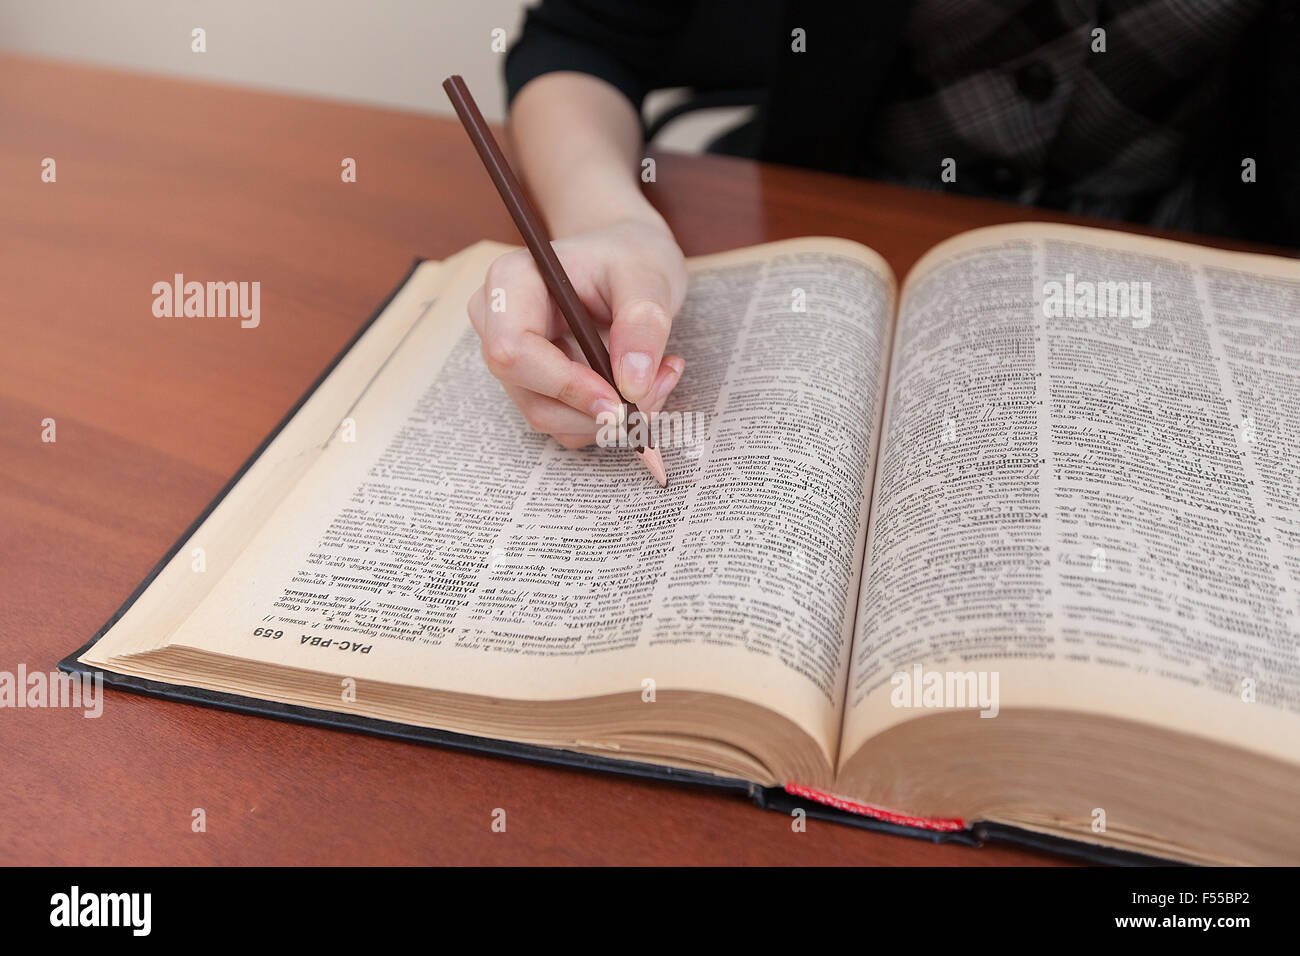 Student holding a pencil in his hand and is studying textbook - Stock Image